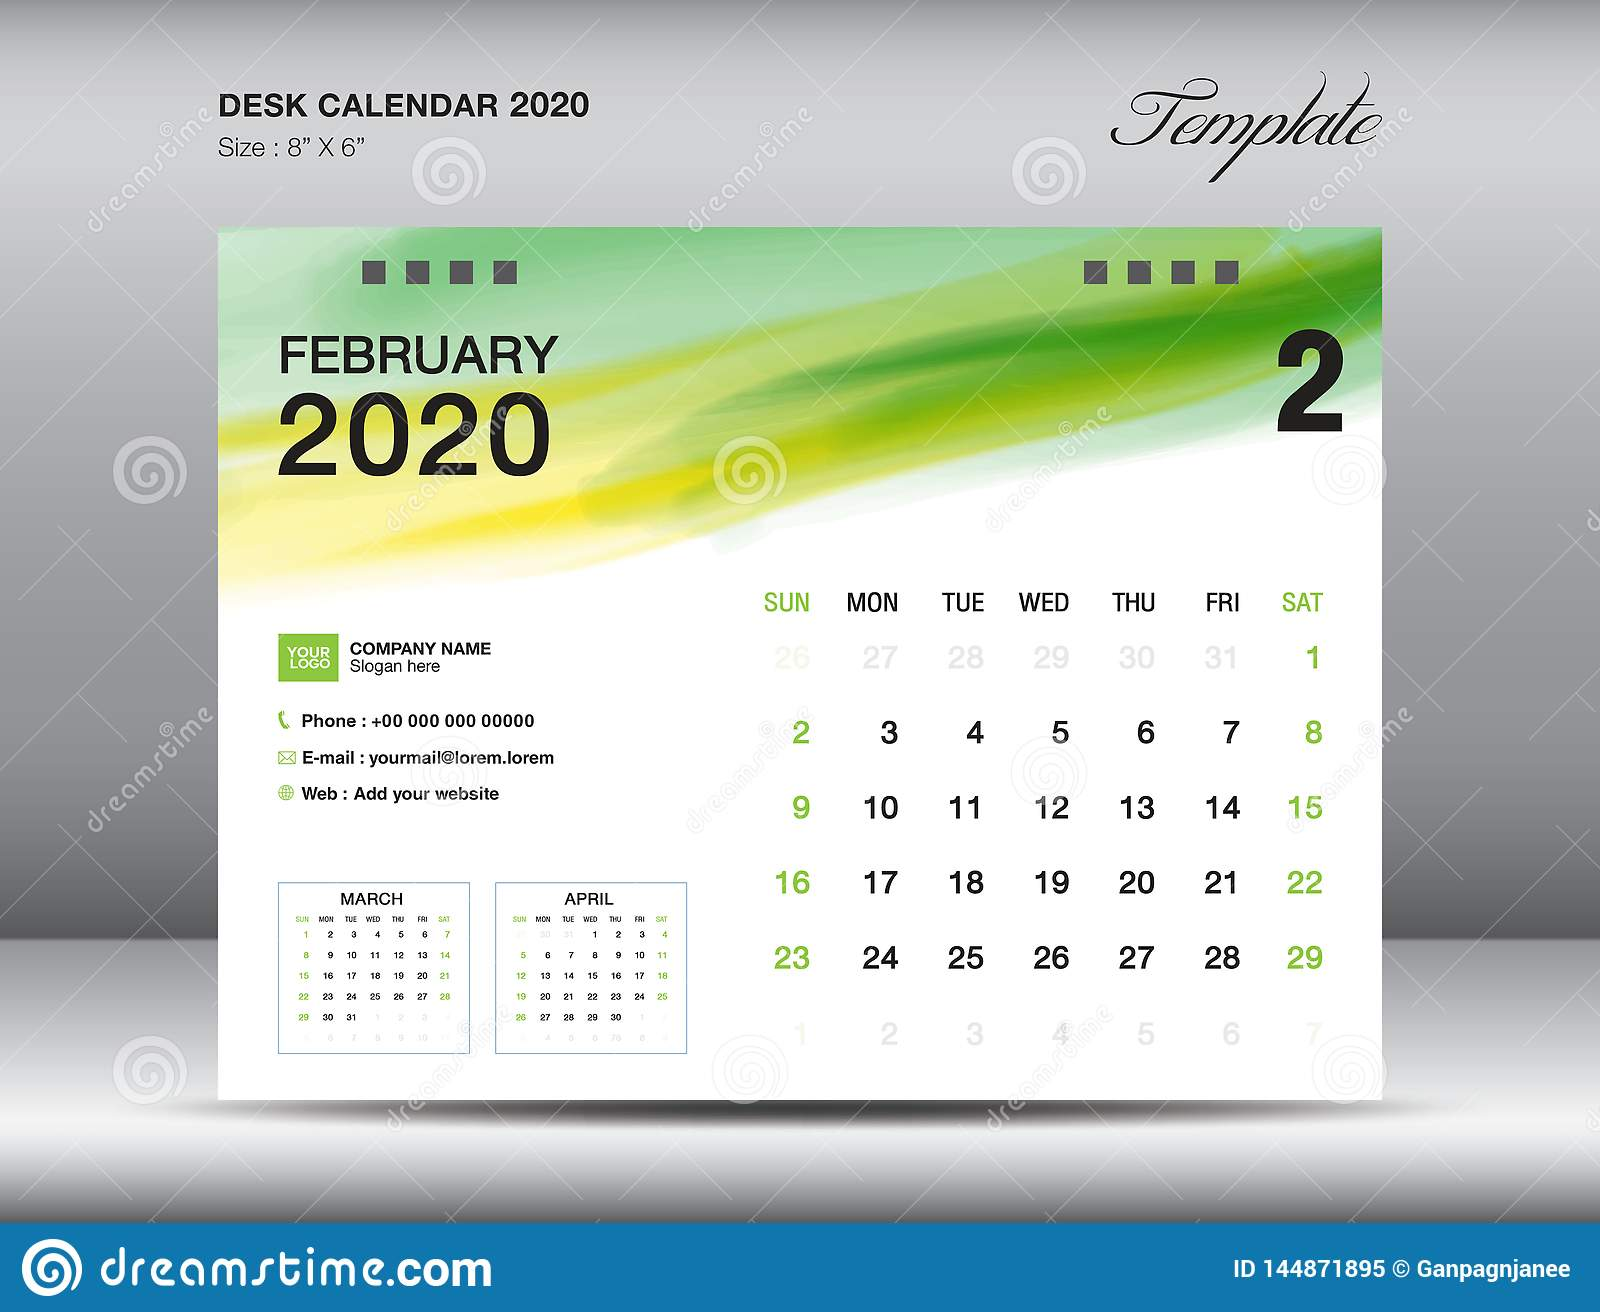 Desk Calendar 2020 Template Vector February 2020 Month Business Layout 8x6 Inch Stock Vector Illustration Of Advertisement Holiday 144871895